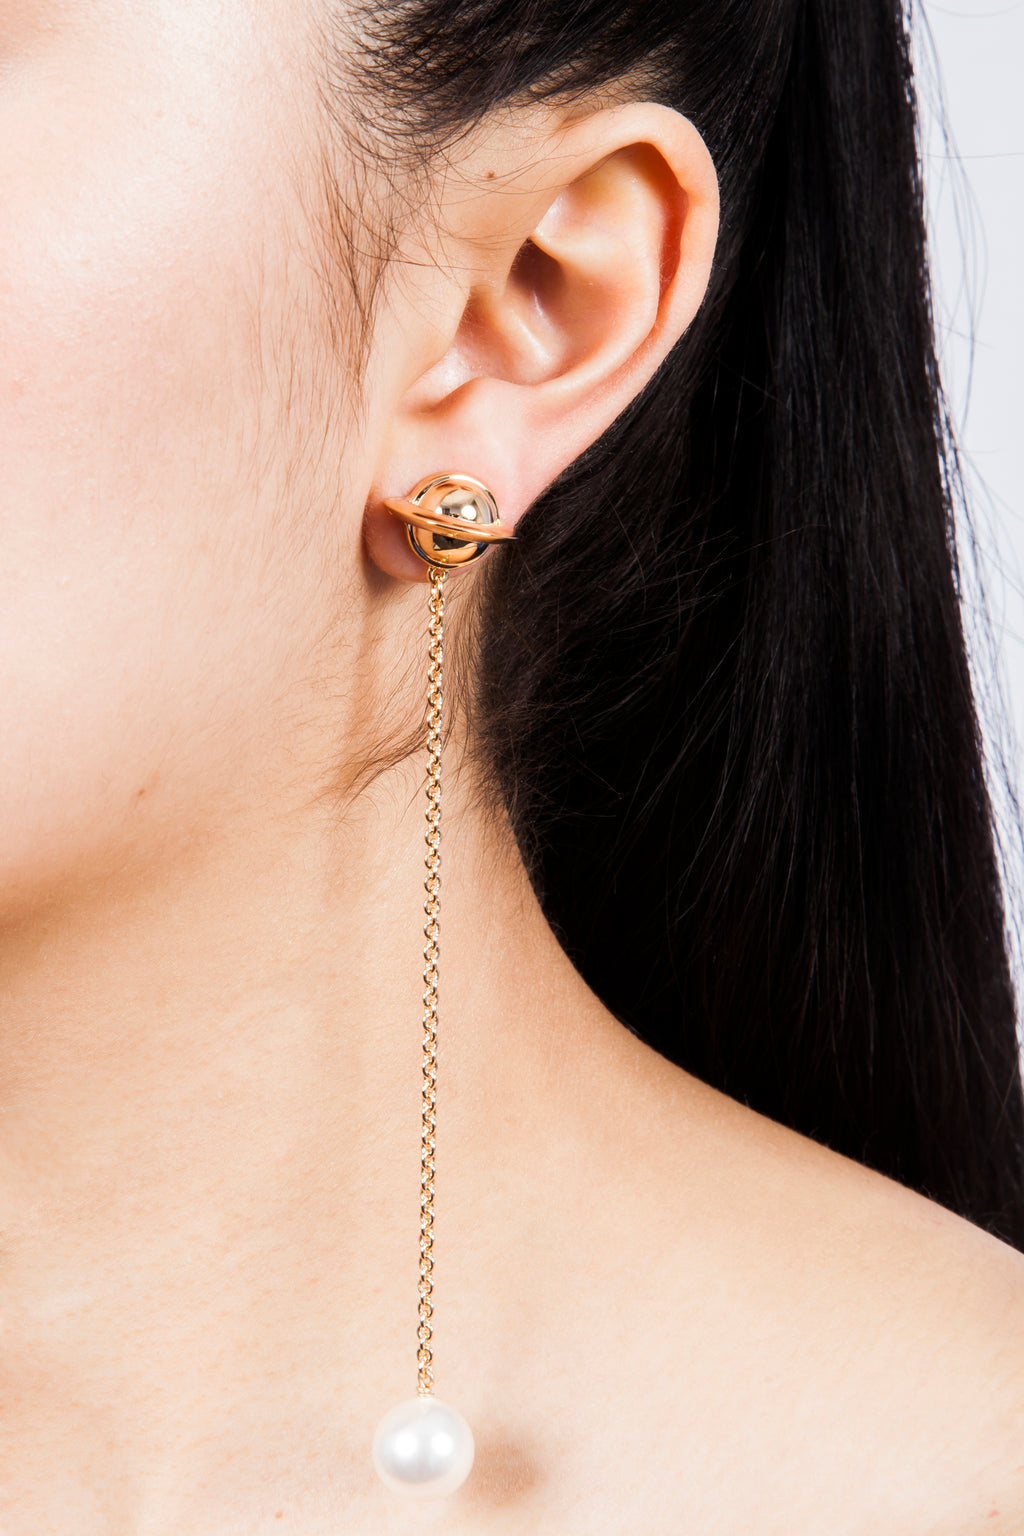 Iris Trends Astro 27 Long Earrings by Eshvi London